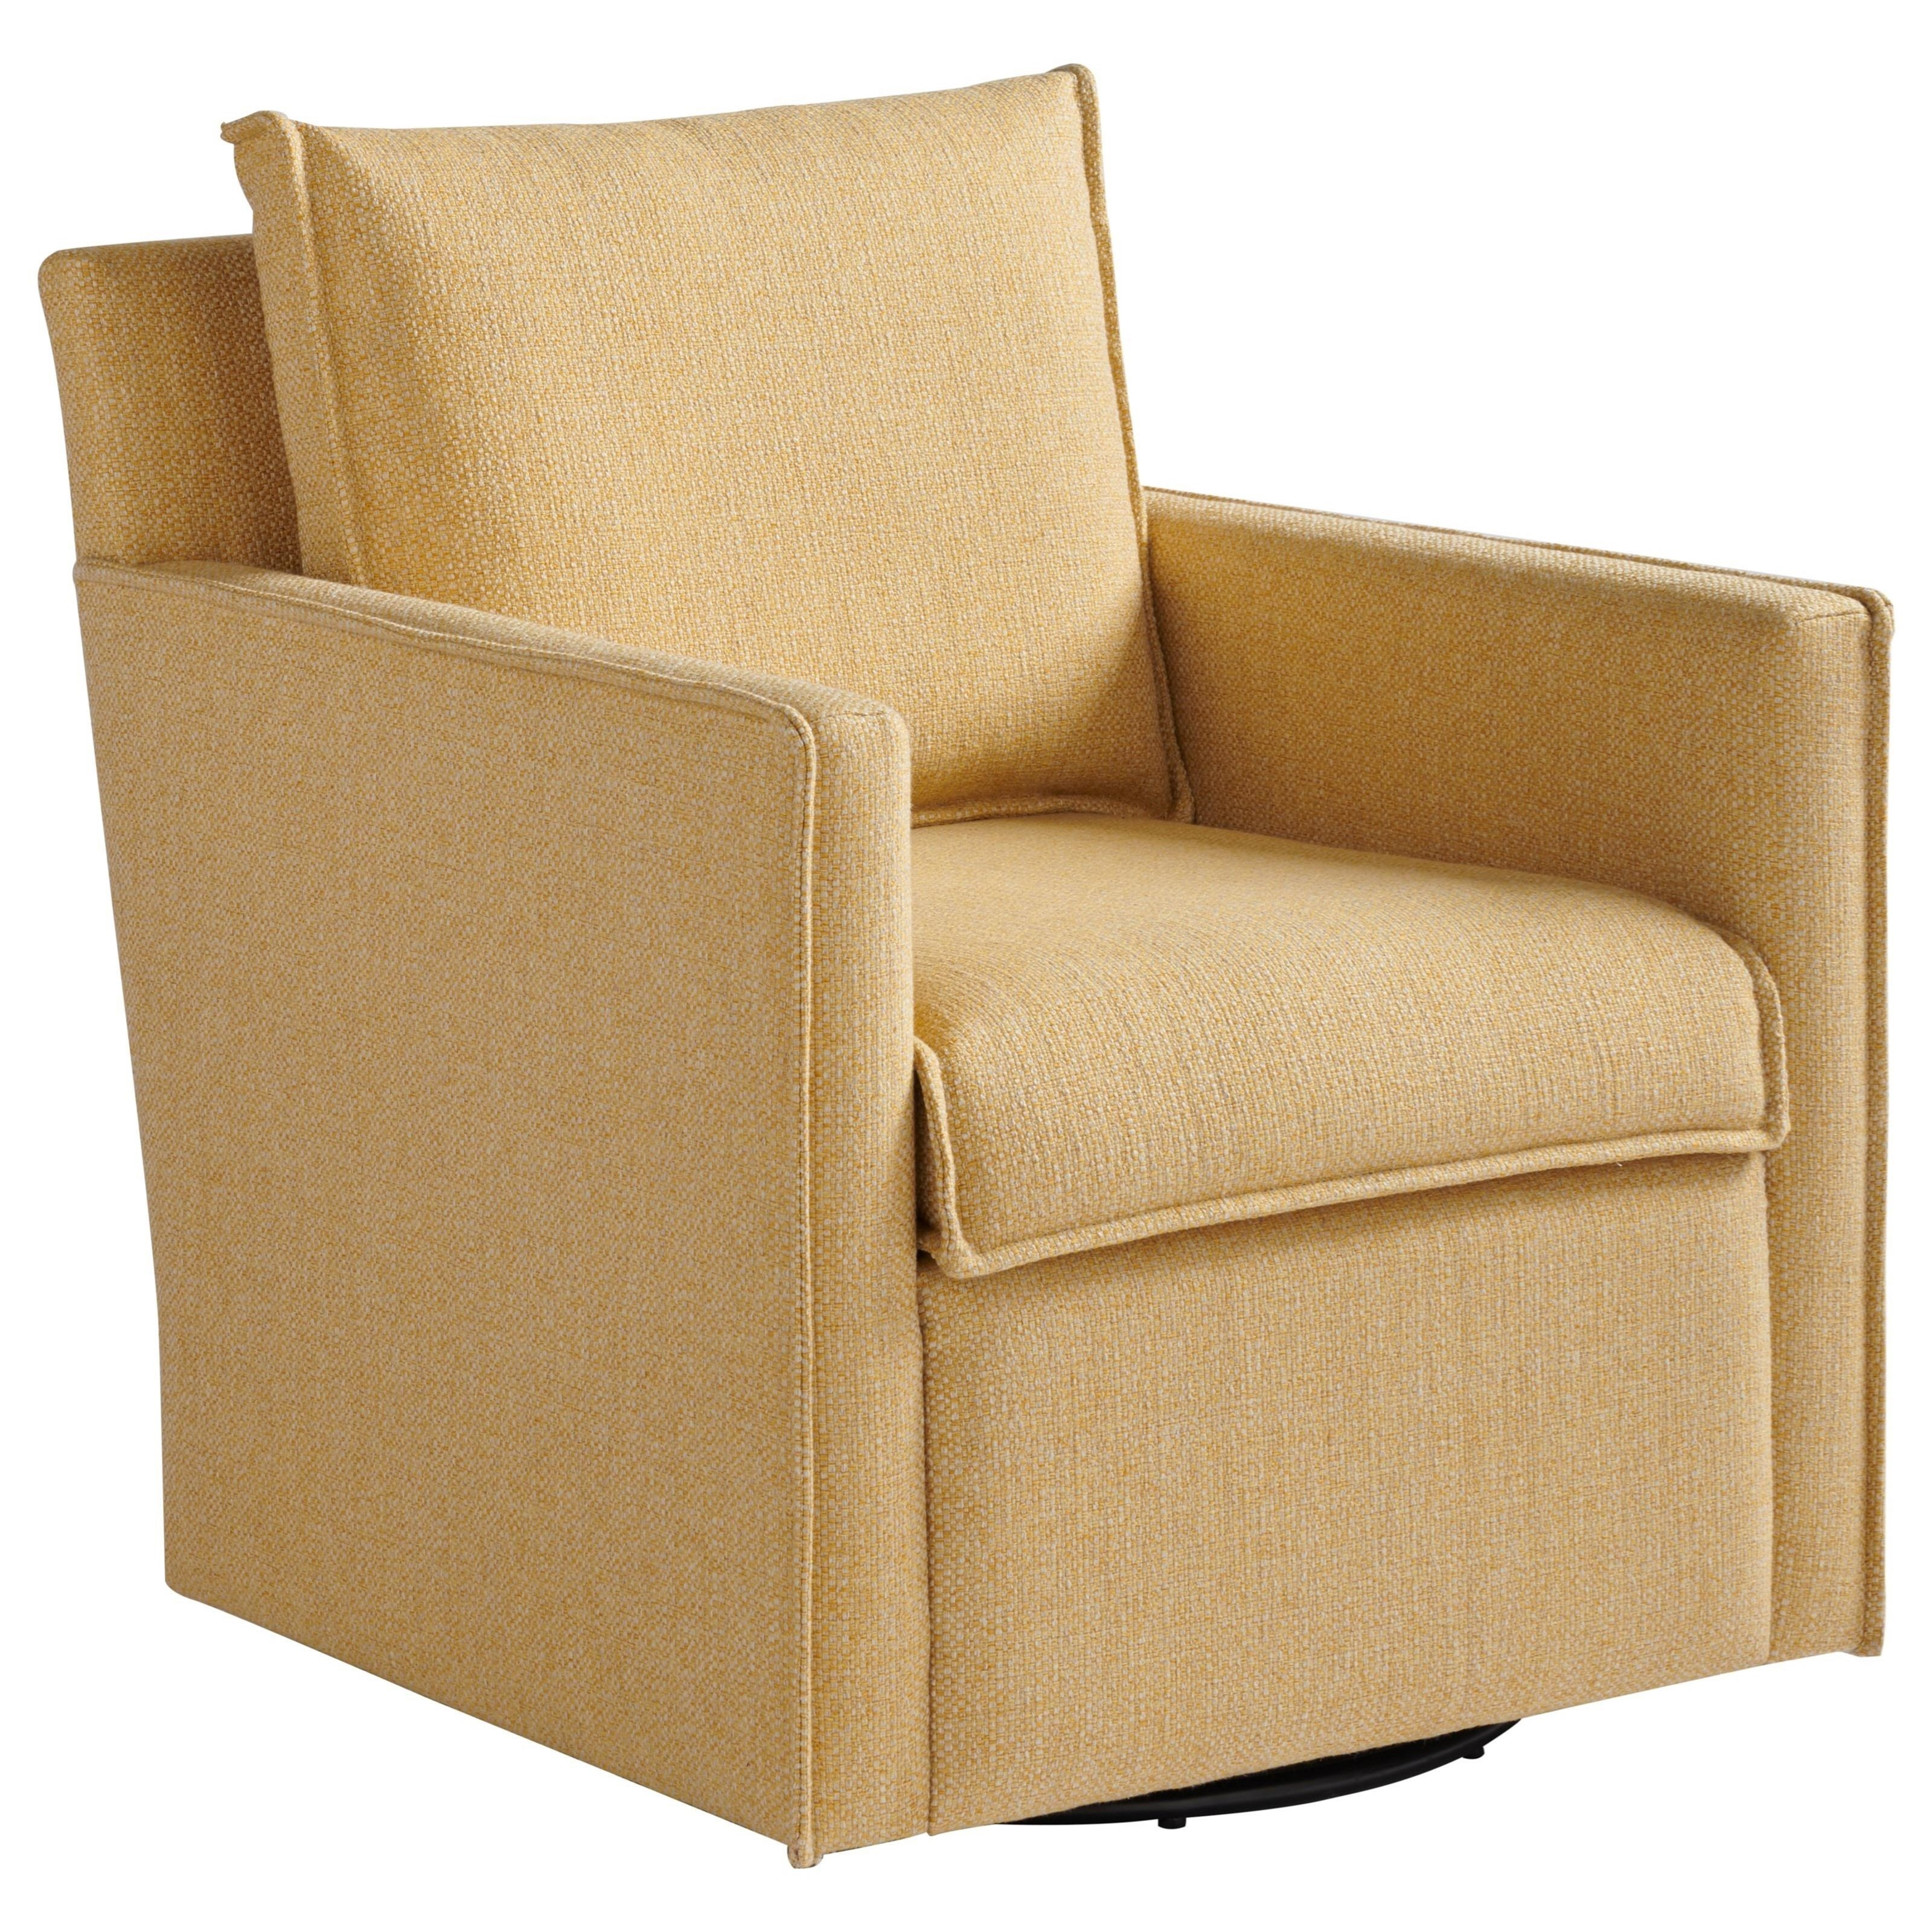 Accent Chairs Barley Swivel Chair by Universal at Upper Room Home Furnishings